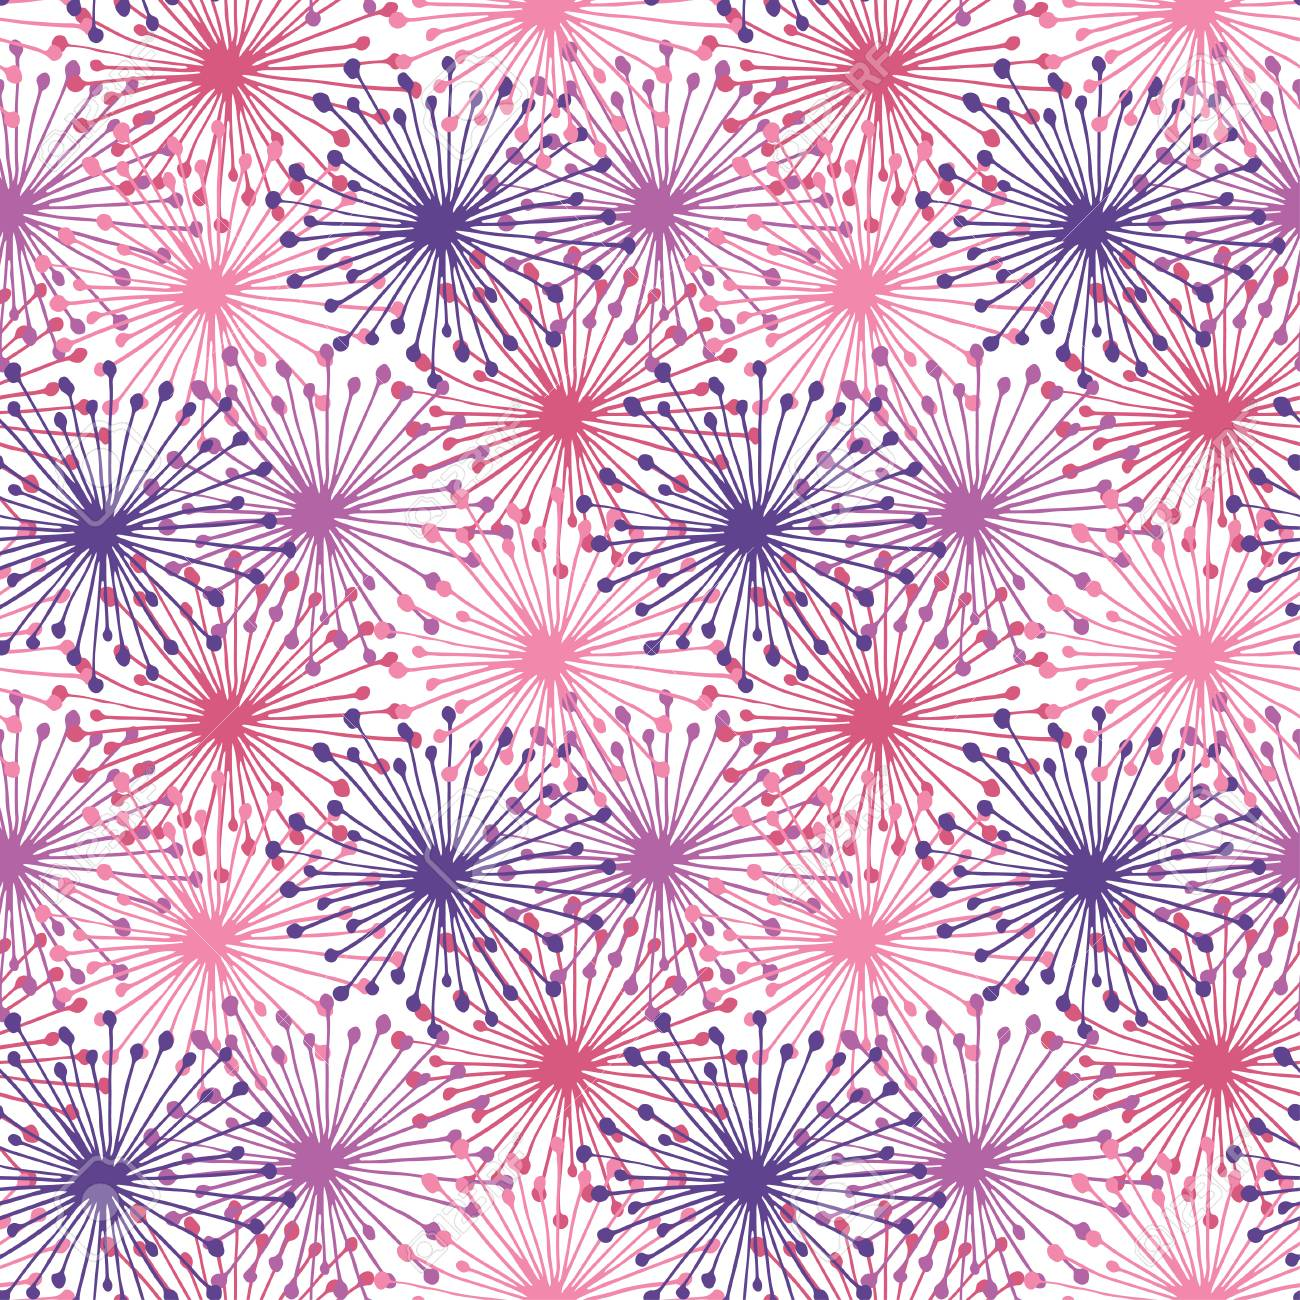 Bright Seamless Pattern In Purple And Pink Colors Repeating Abstract Floral Background Elegant Template For Fashion Prints Texture For Wallpaper